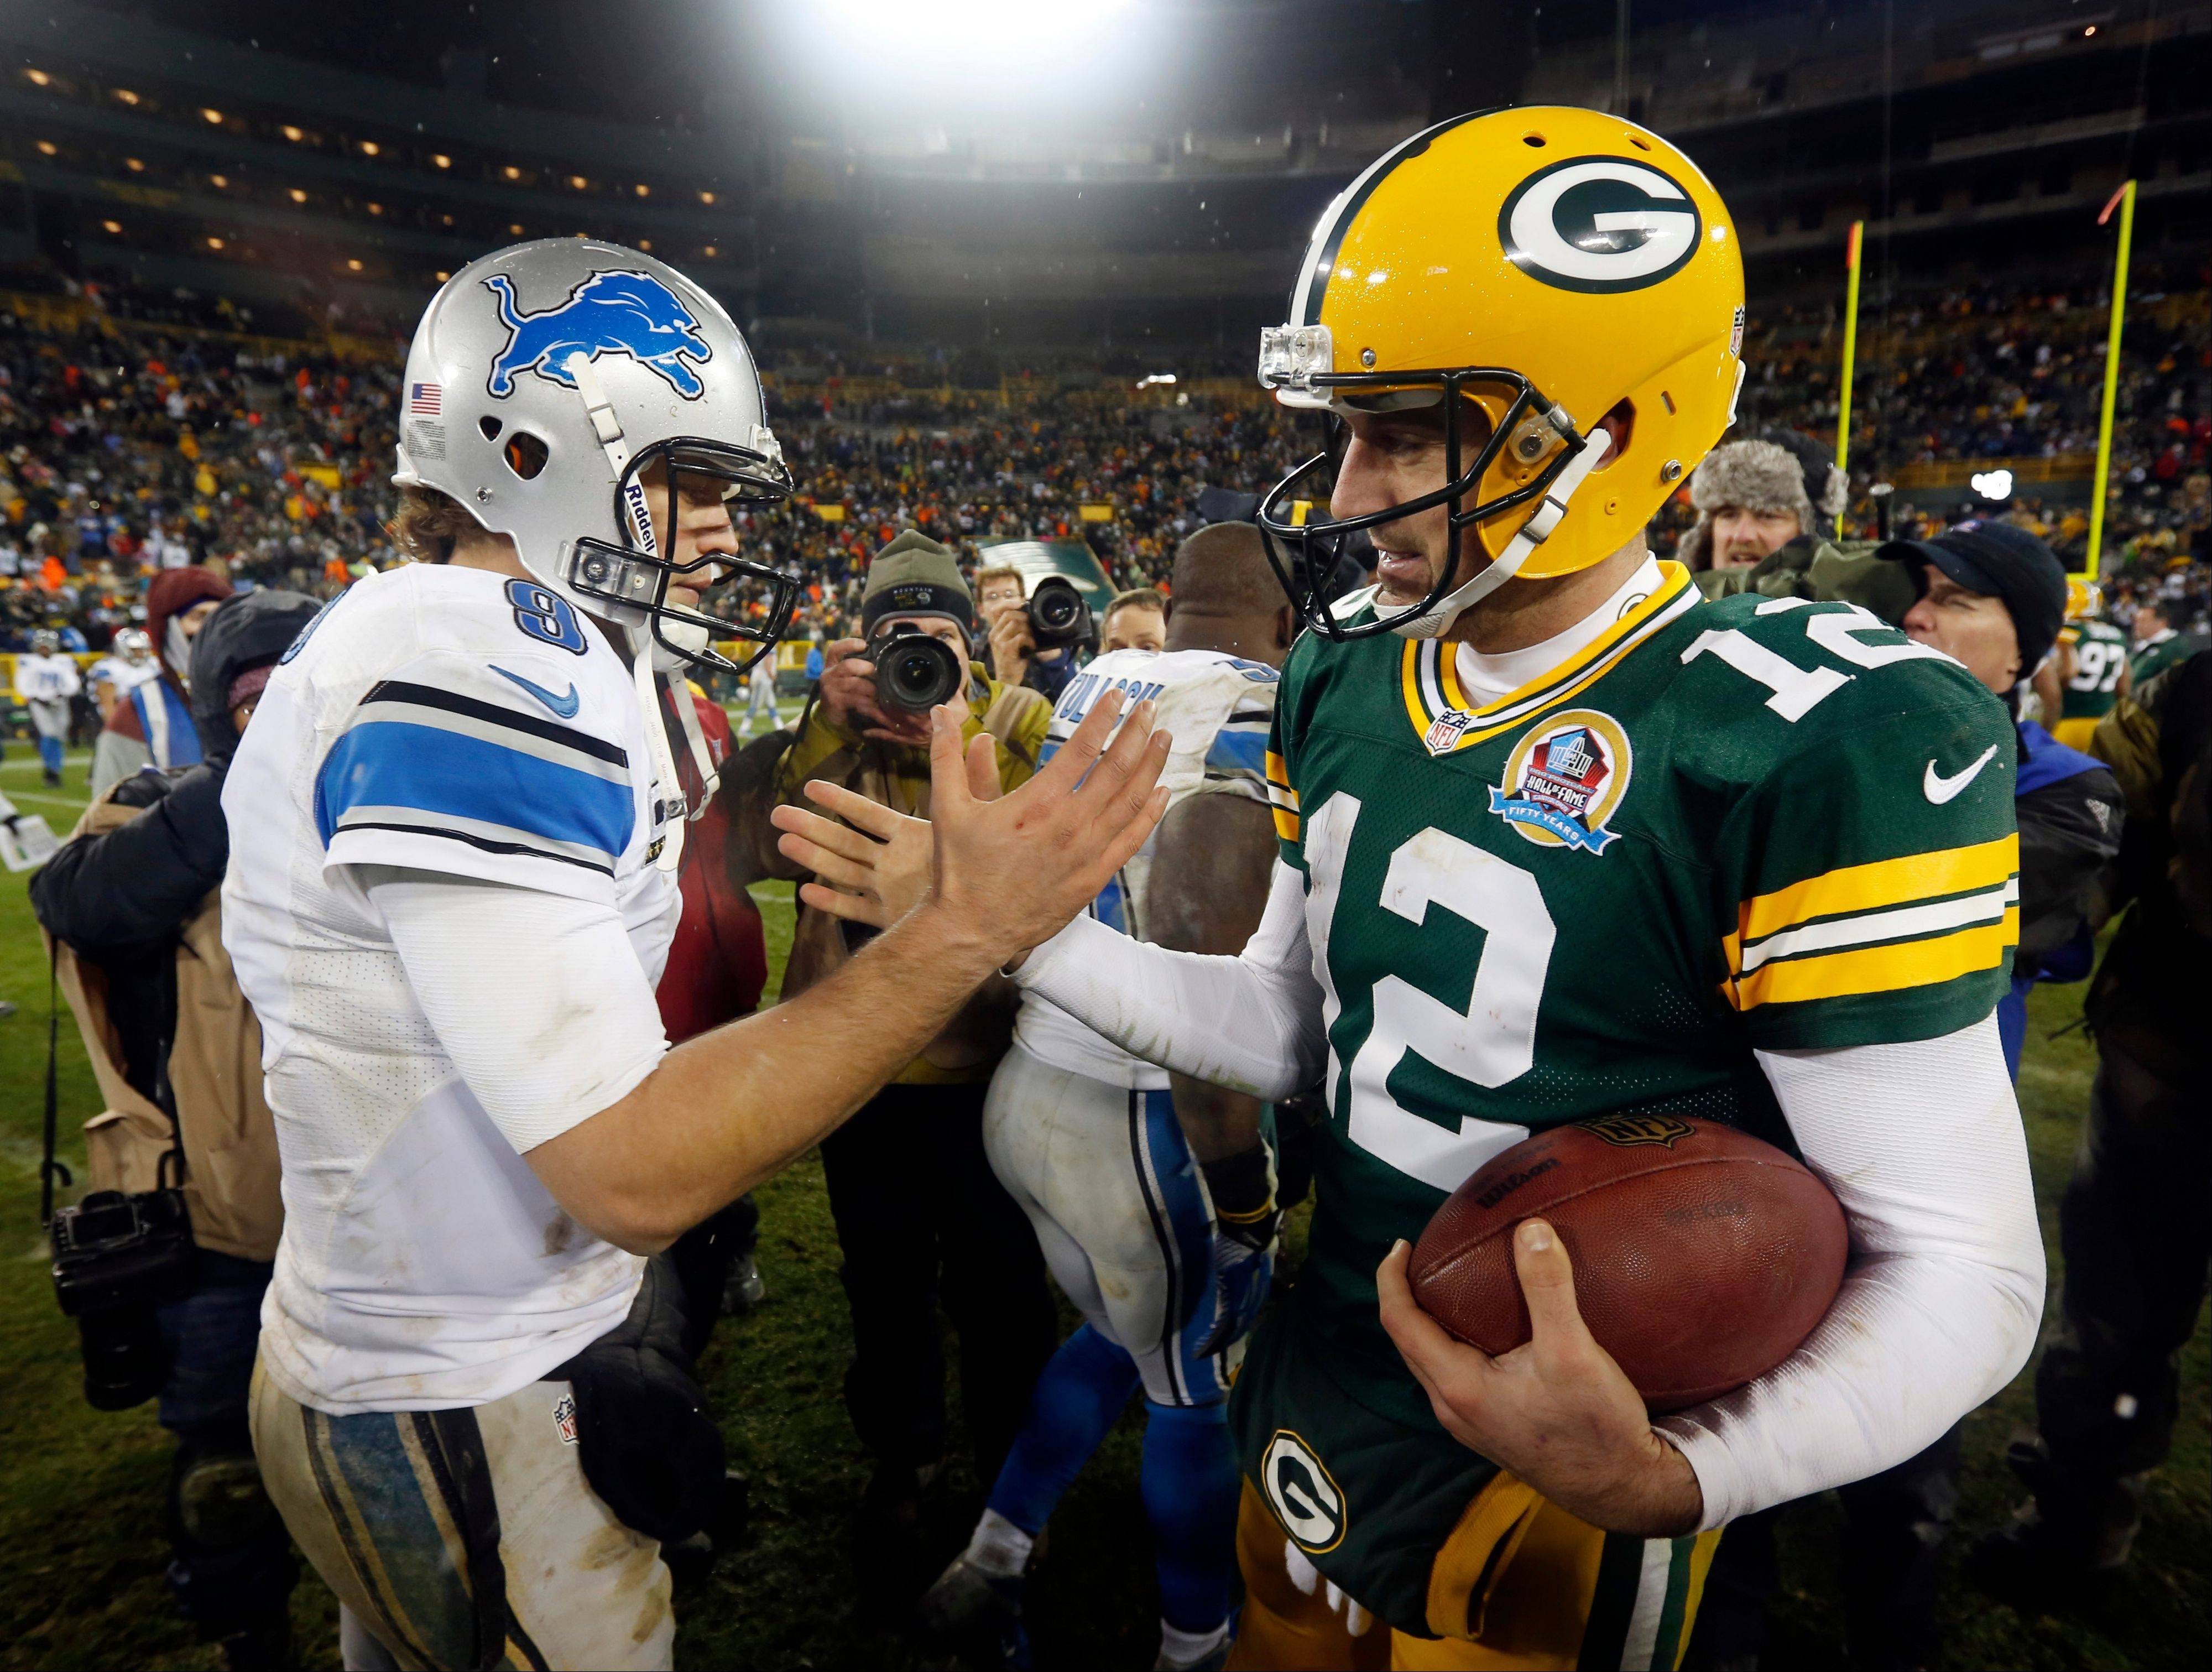 Green Bay Packers quarterback Aaron Rodgers shakes hands with Detroit Lions quarterback Matthew Stafford after the Packers� victory Sunday at Lambeau Field.